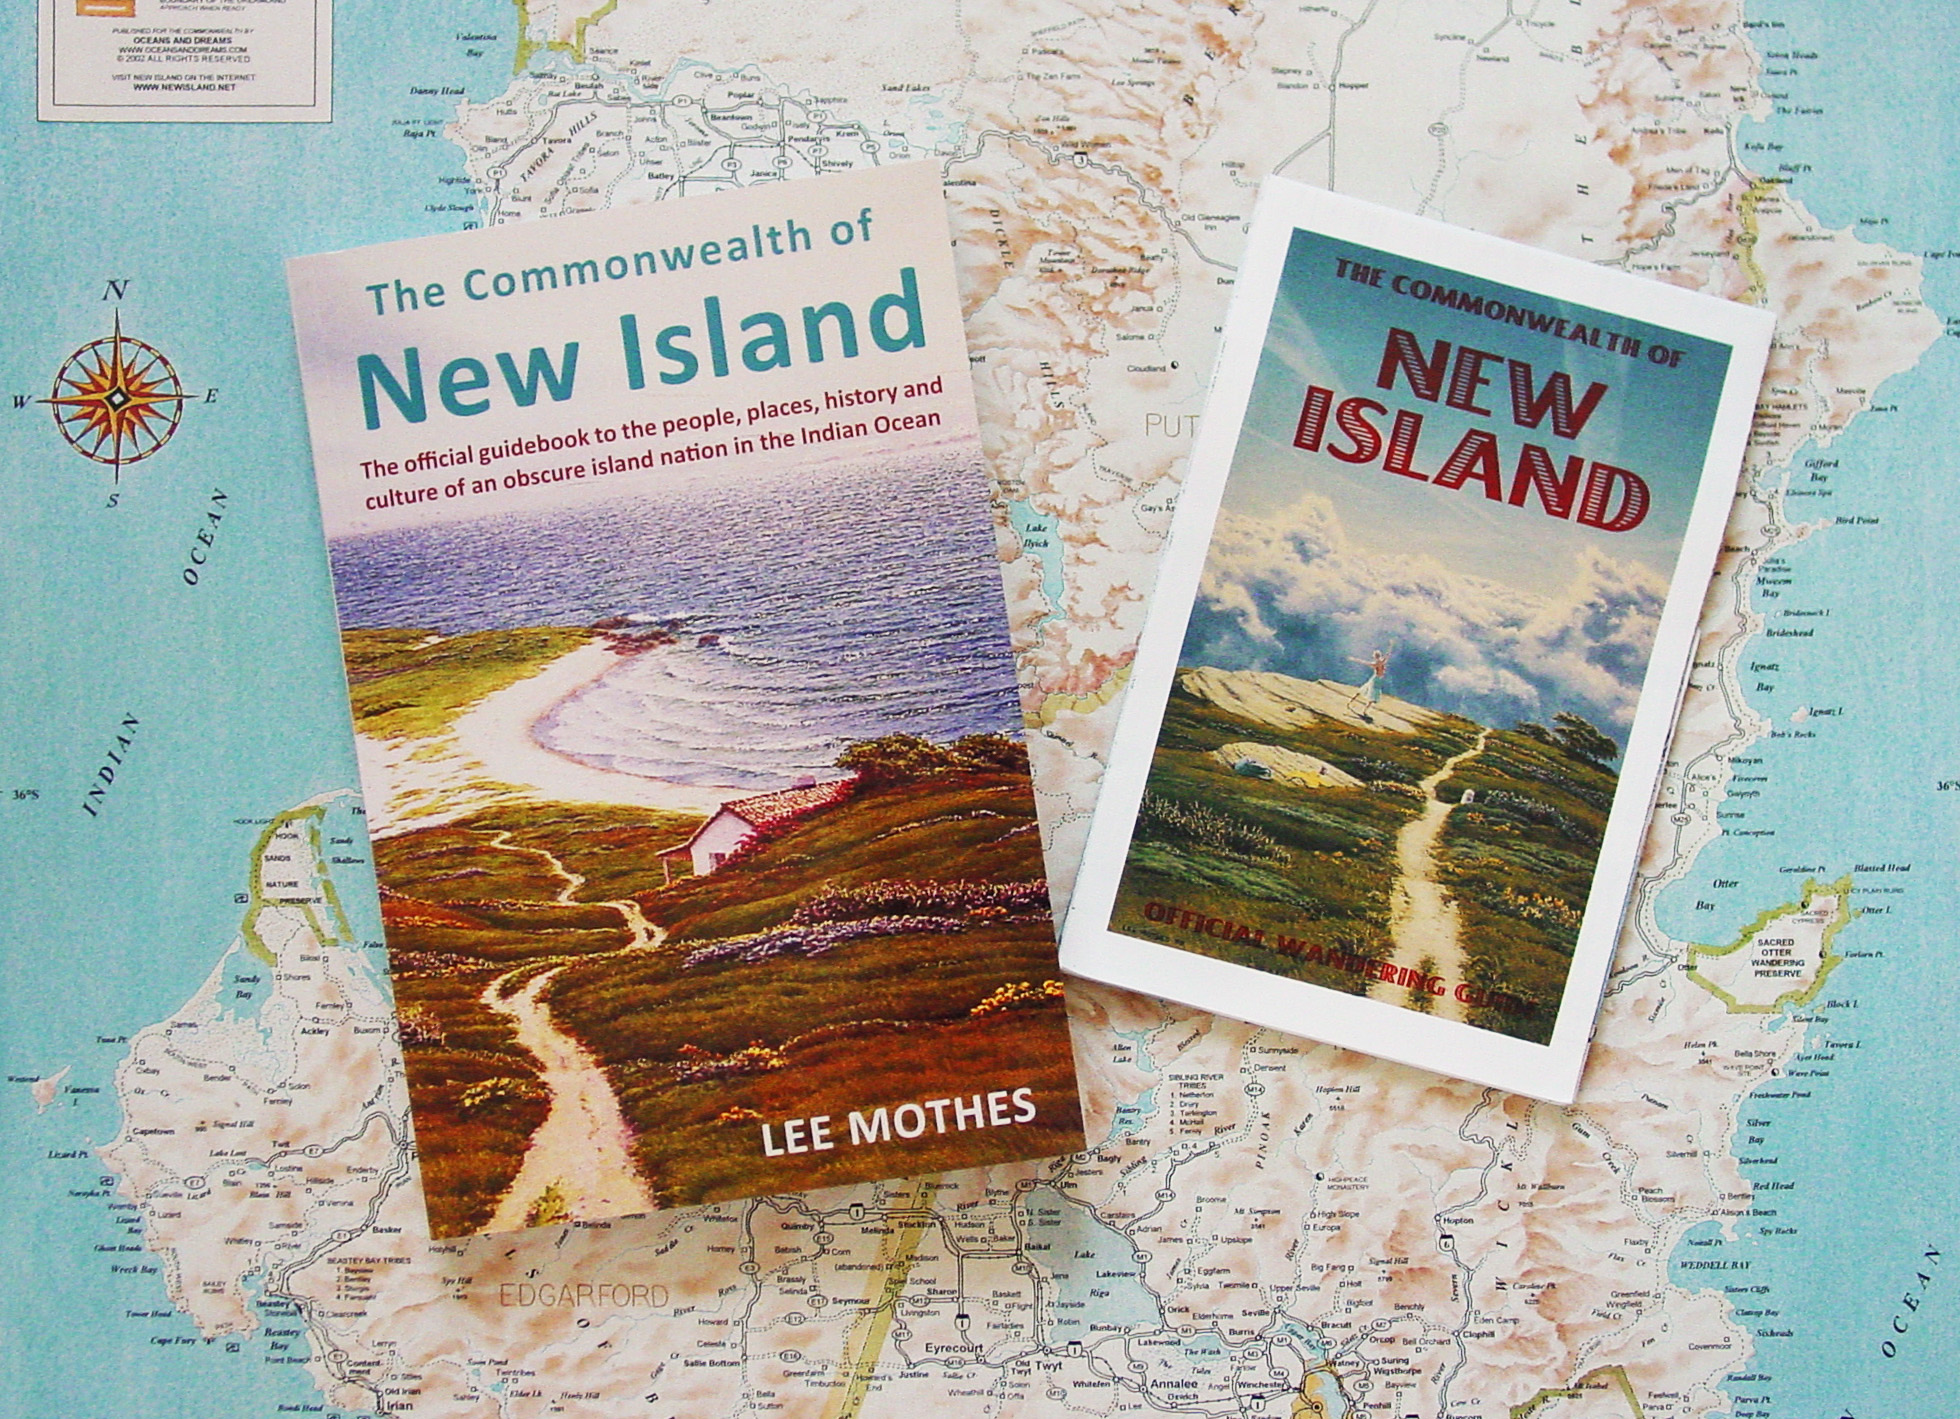 Available now for $27.95. To order a copy, with the map included for free, contact Lee Mothes by E-mail at mothesart@gmail.com.